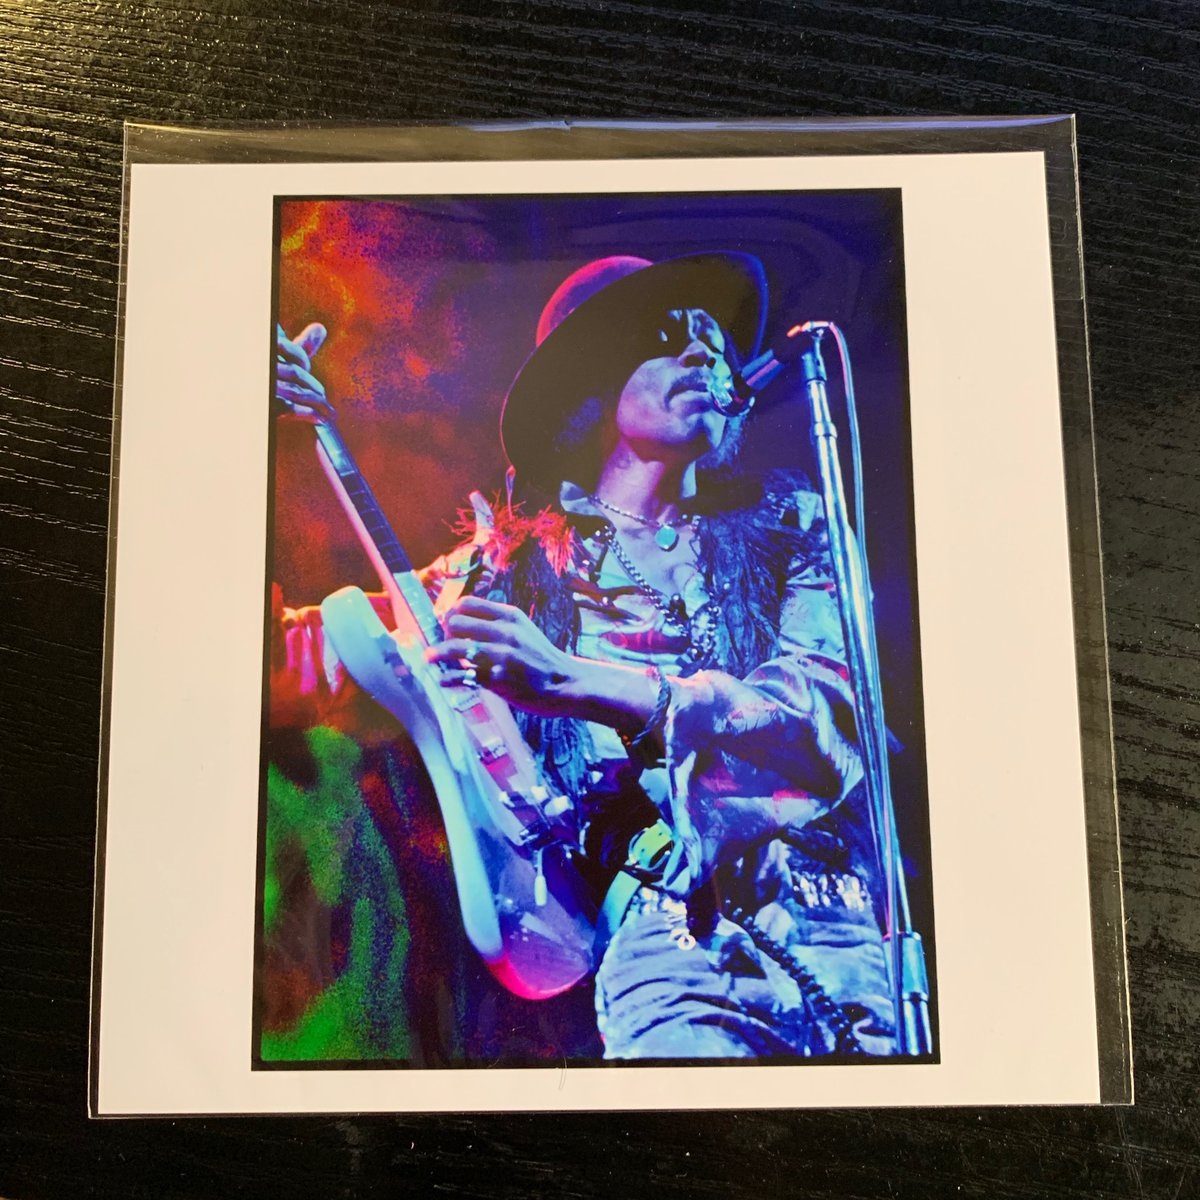 I'm totally jazzed. My hand signed #ElliottLandy photo of #JimiHendrix just arrived from @MagnumPhotos . 50% of proceeds are going to the #naacp 🖤 buy art and give back... it's good to pay forward @JimiHendrix  @ElliottLandy @NAACP https://t.co/aXJIE23OX1